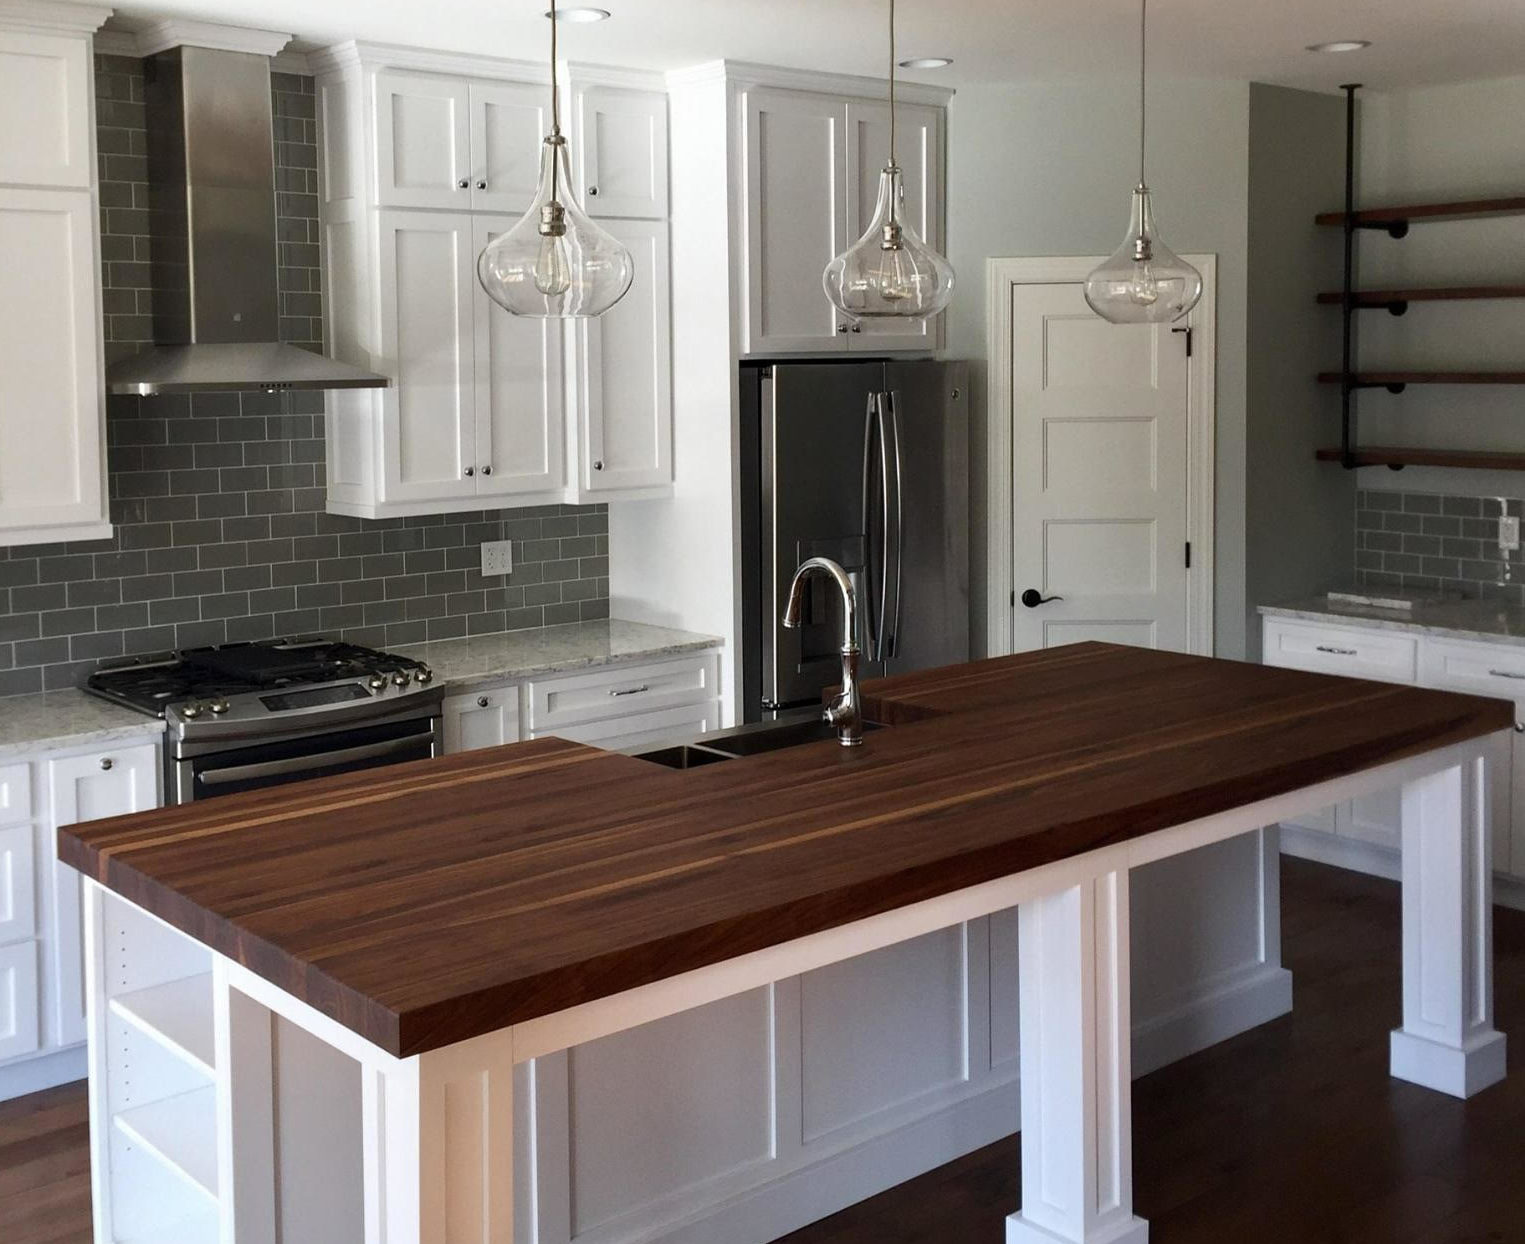 Best Wood For Butcher Block Countertops: Customer Submitted Images